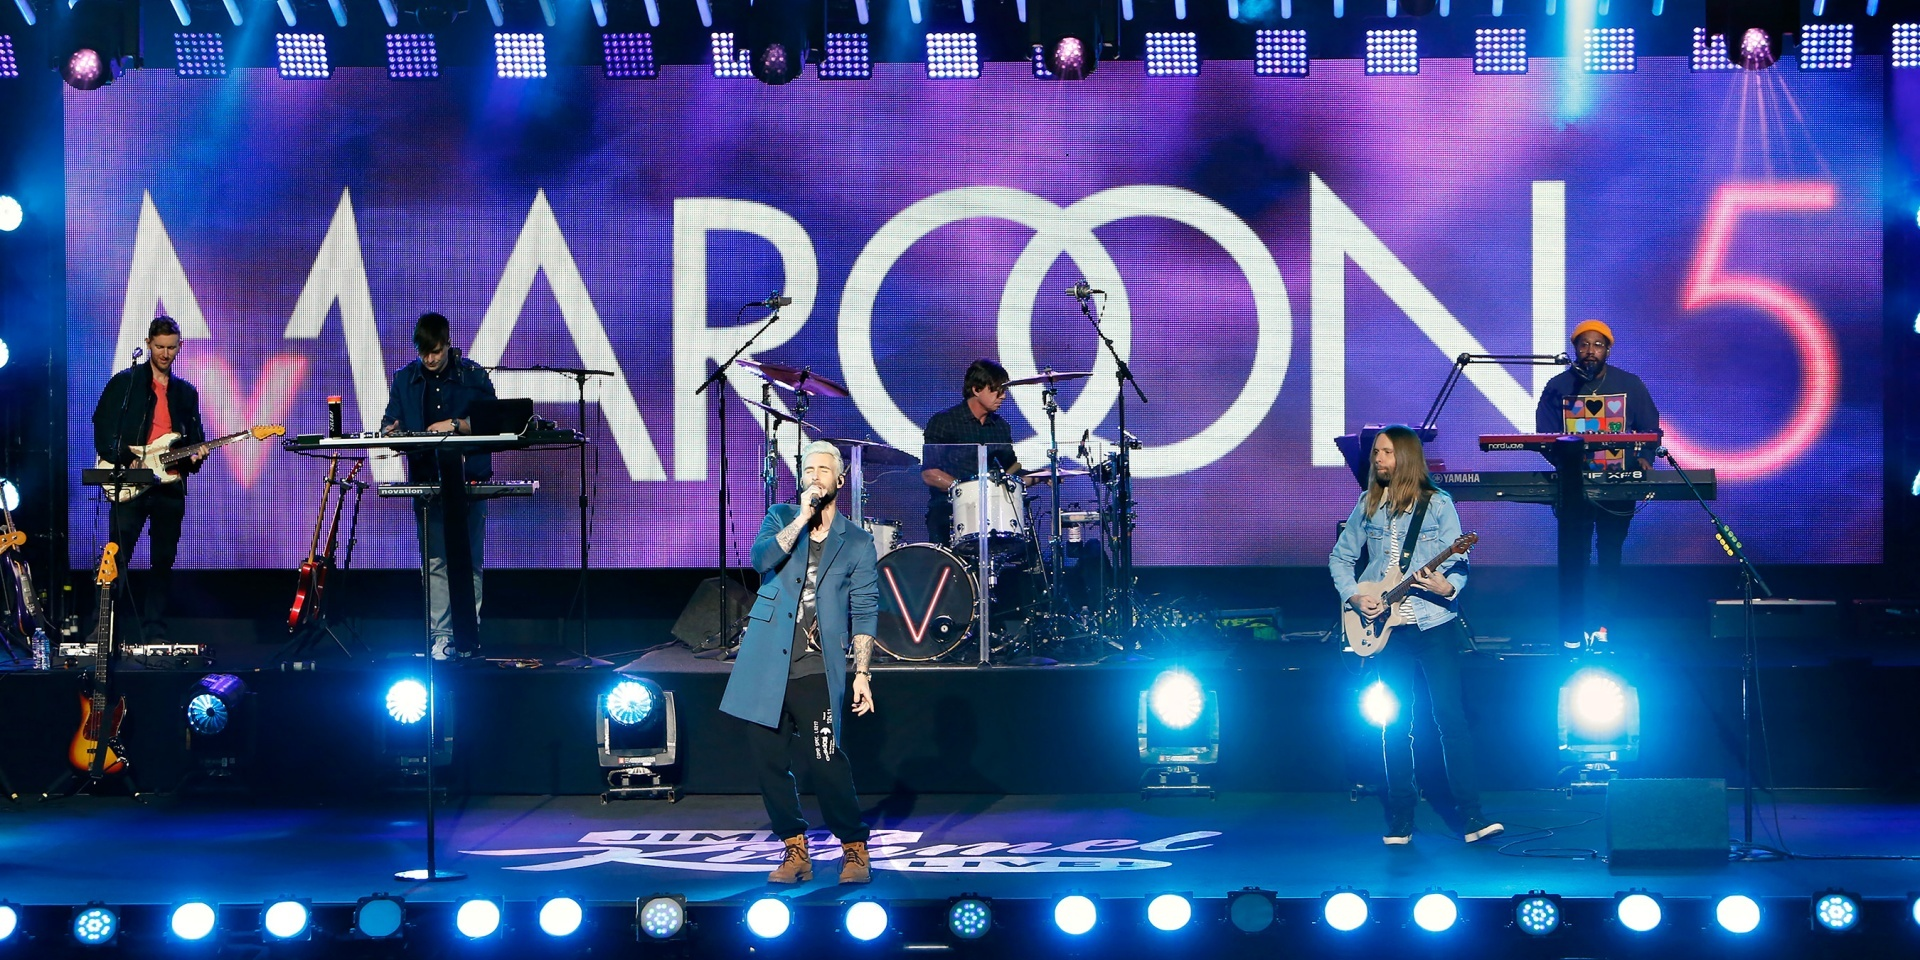 Maroon 5 returns with a nostalgic new single 'Memories'